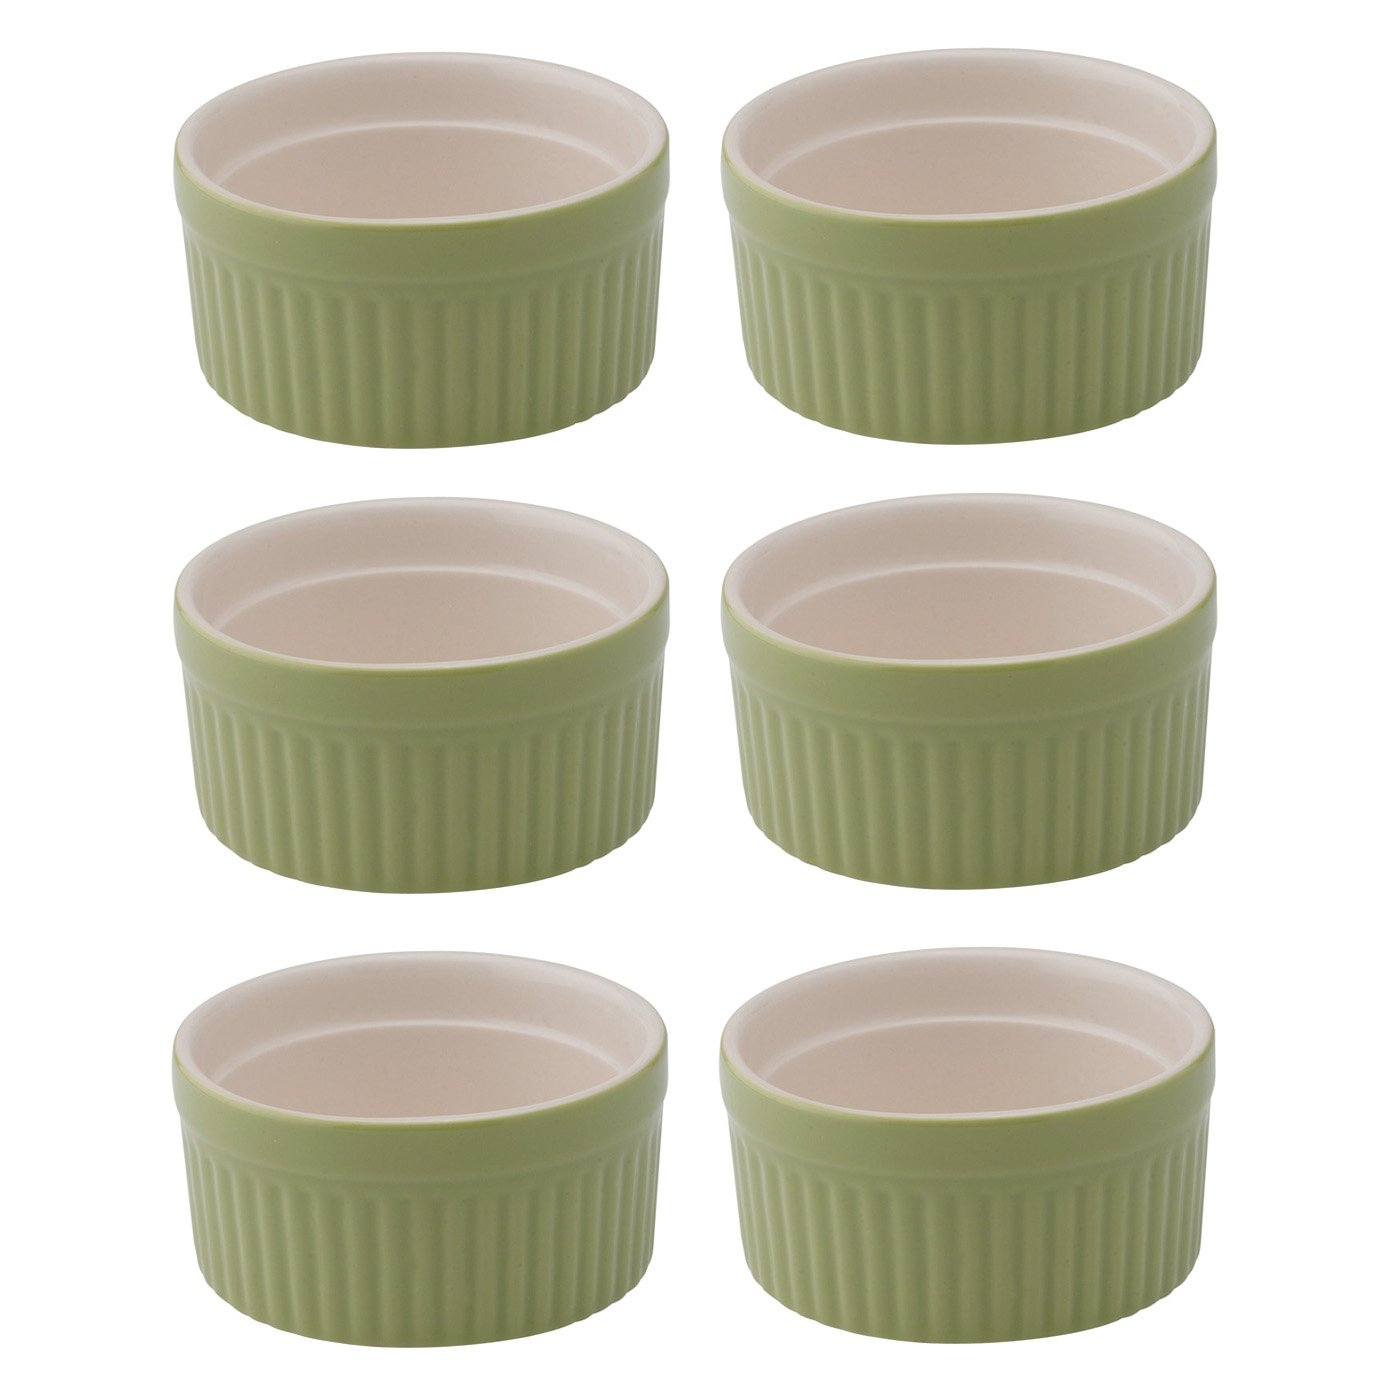 HIC Harold Import Co. 98005SG-HIC 6 oz Souffle Ceramic Sage Home Decor Products HIC Brands that Cook